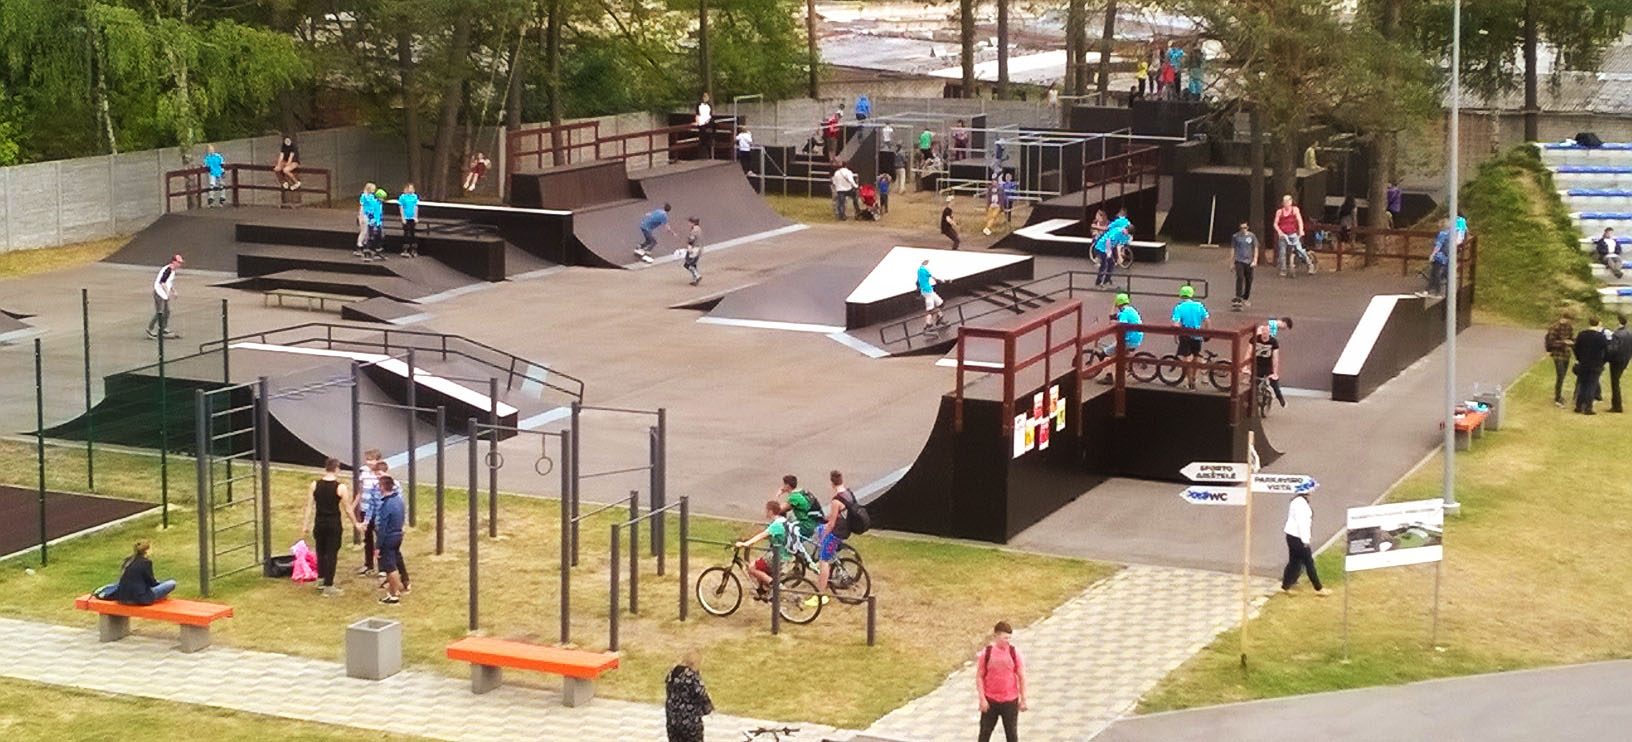 CGS built skatepark with parkour park